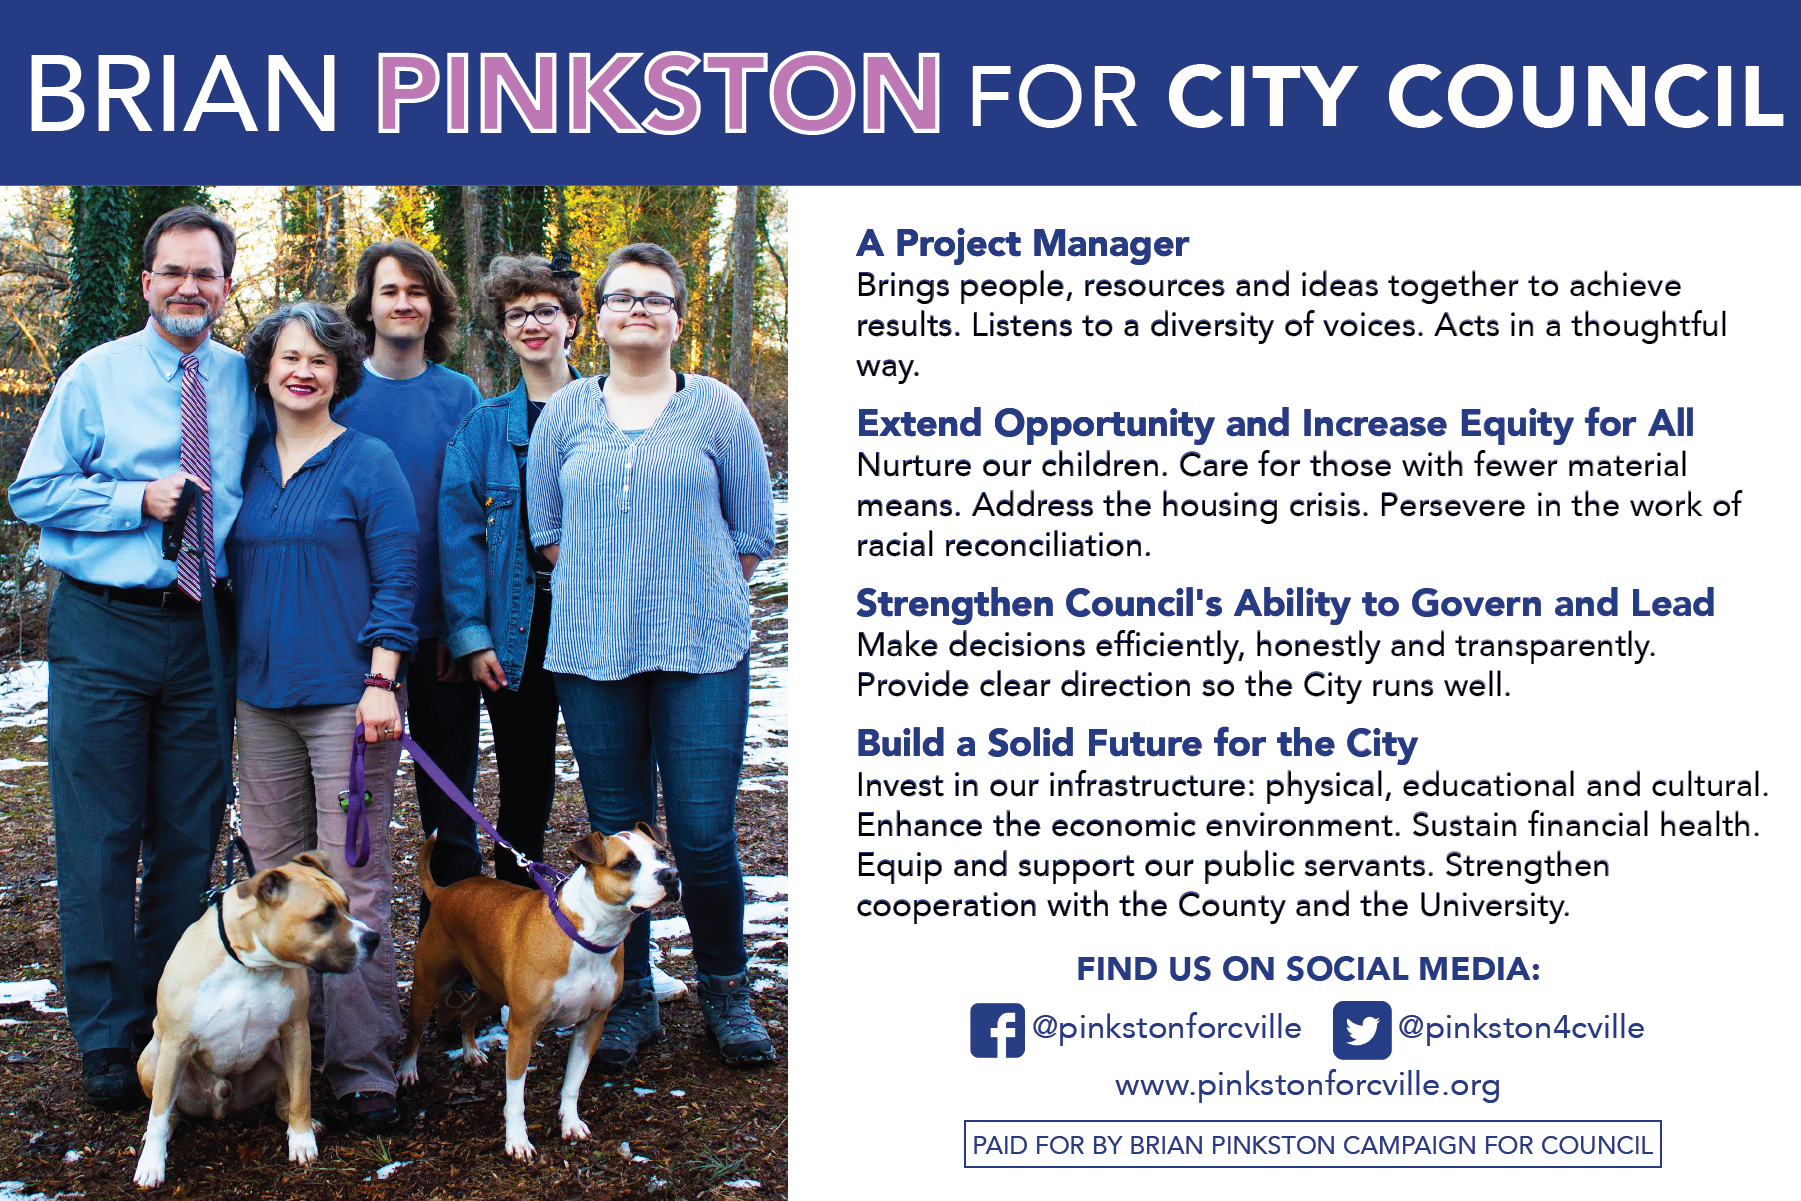 Pinkston for City Council Palm Card-02.png